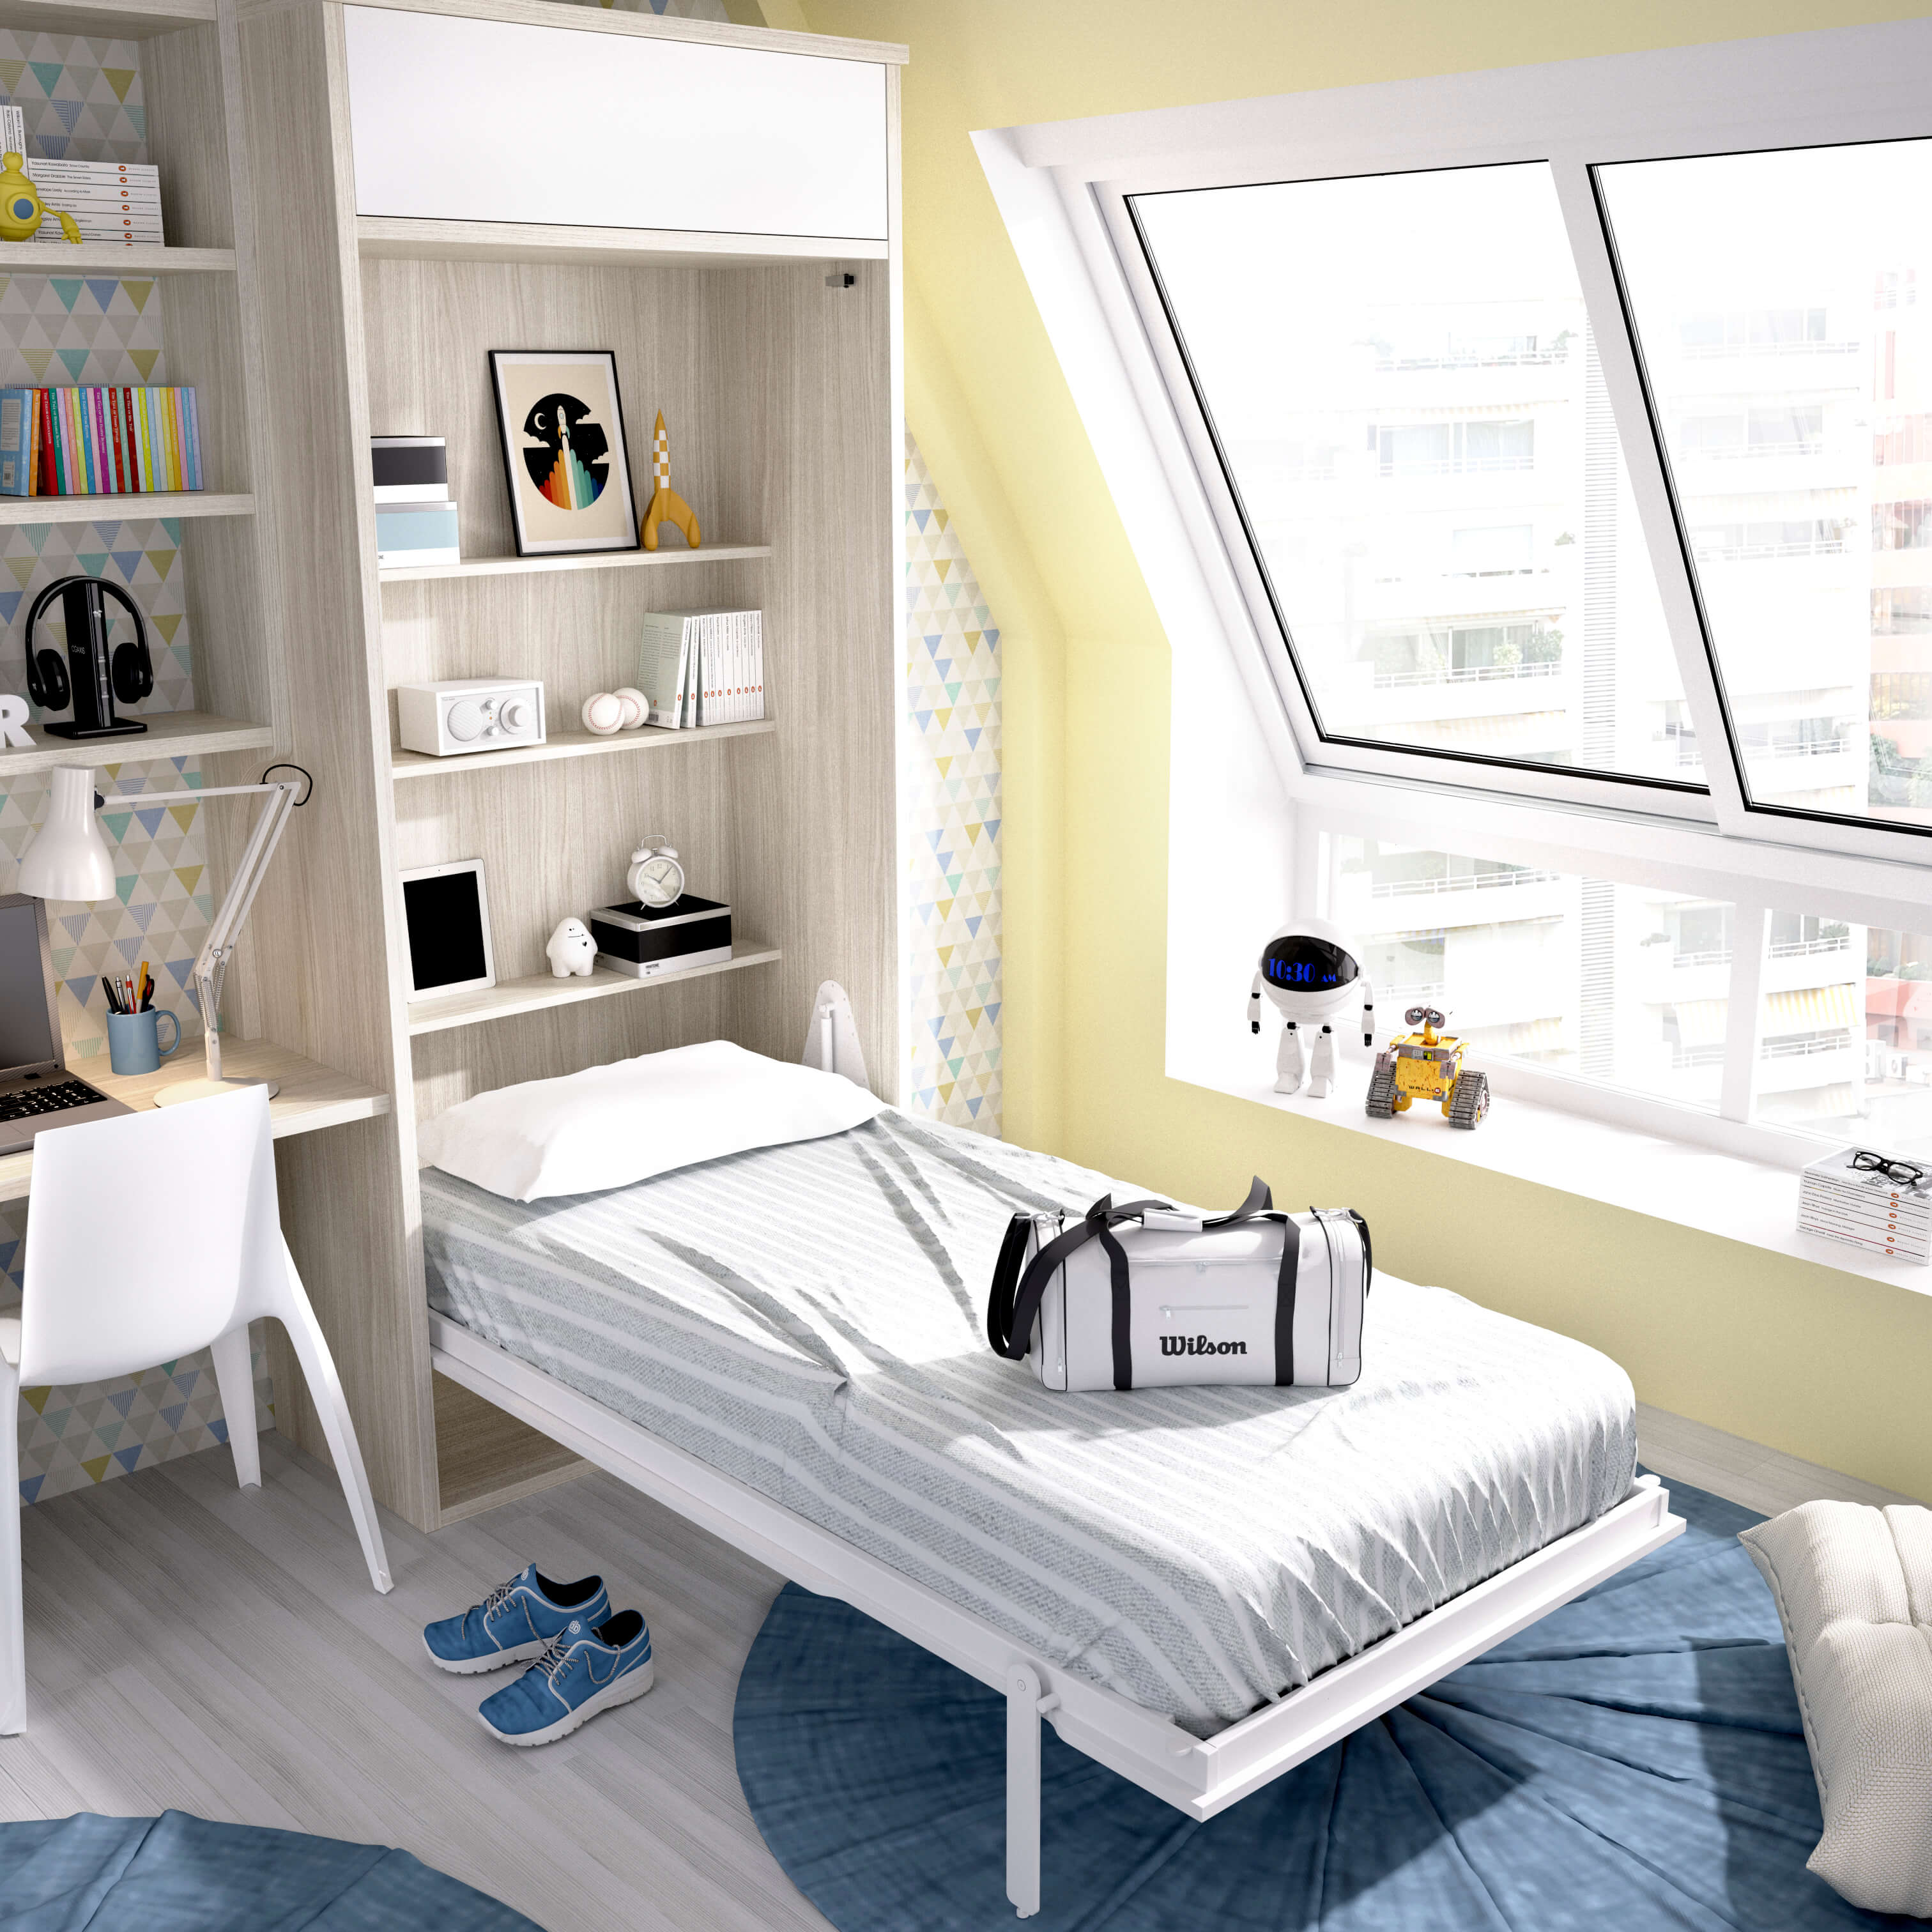 Single vertical wall bed with overhead storage